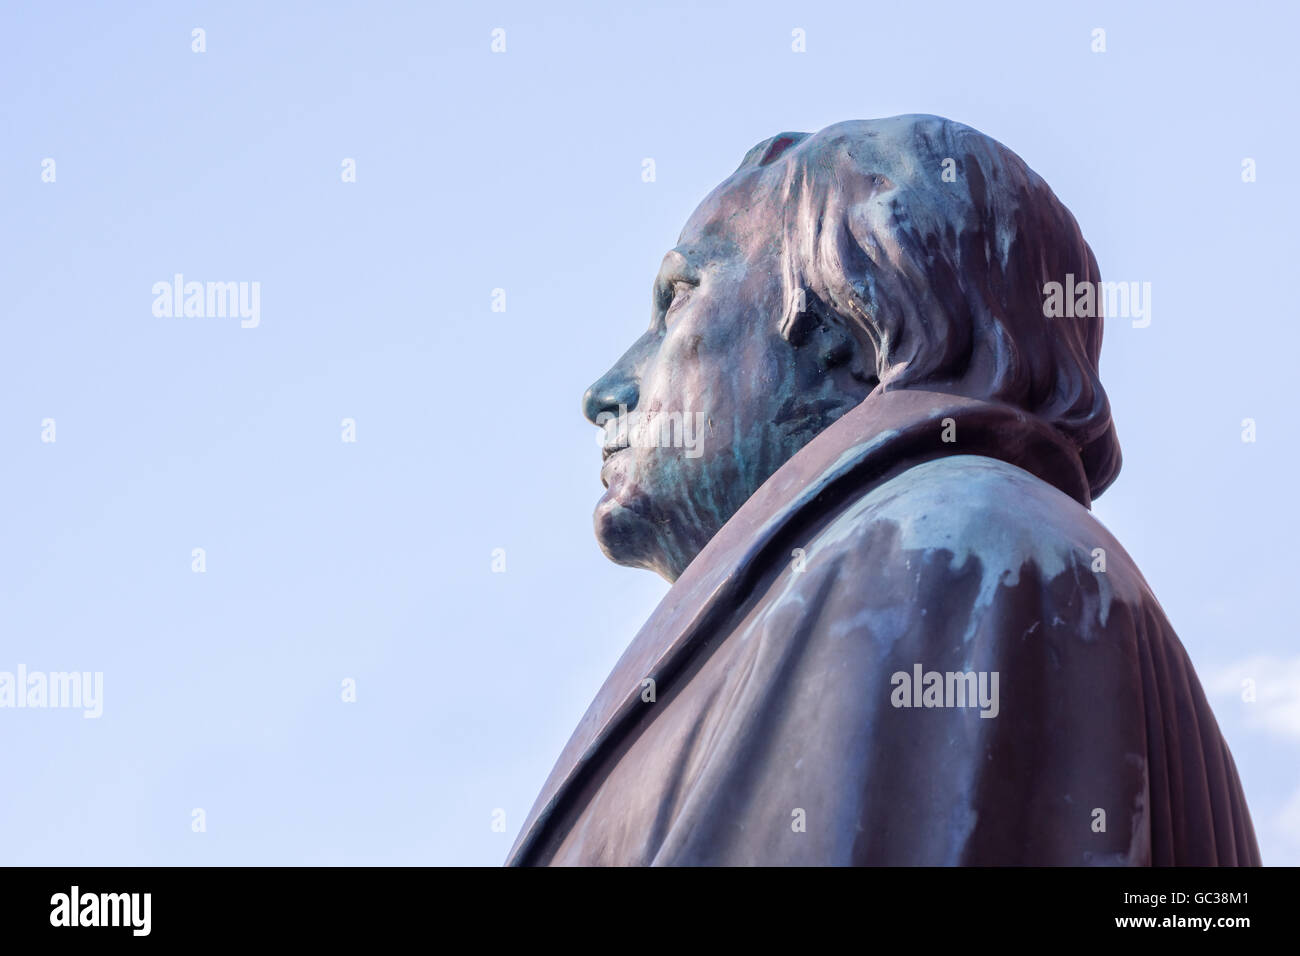 Bronze statue of tre german reformer Martin Luther with space for texts on the blue sky. - Stock Image